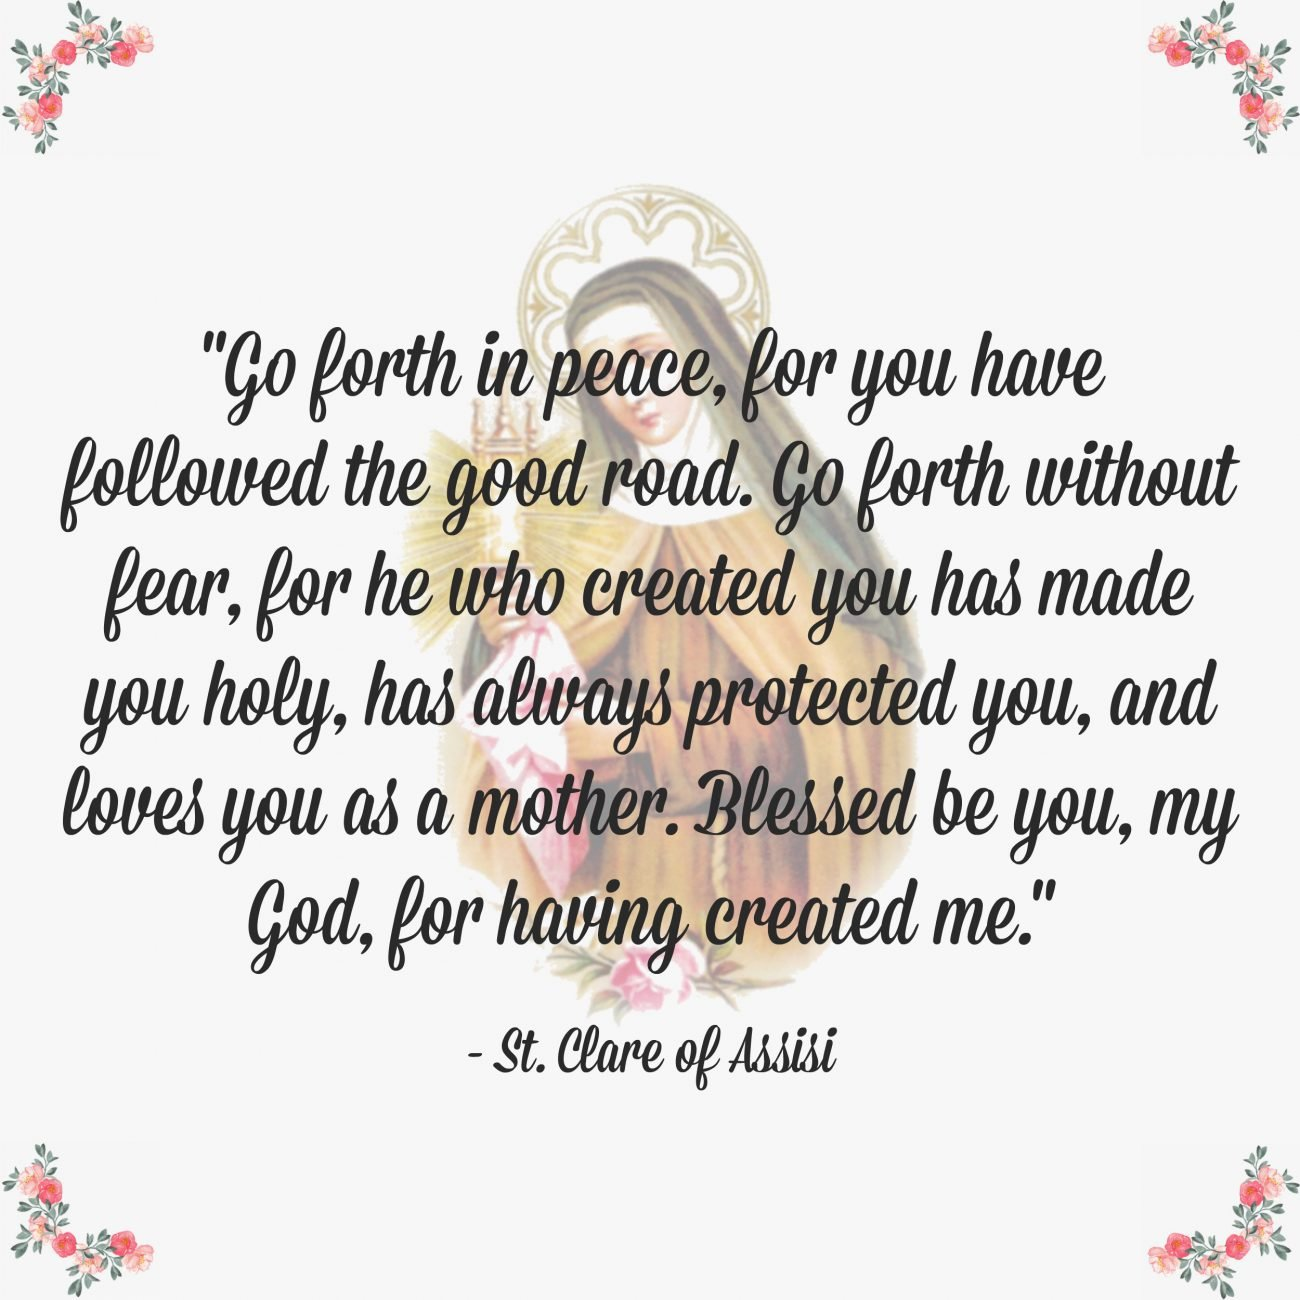 St. Clare of Assisi Quote